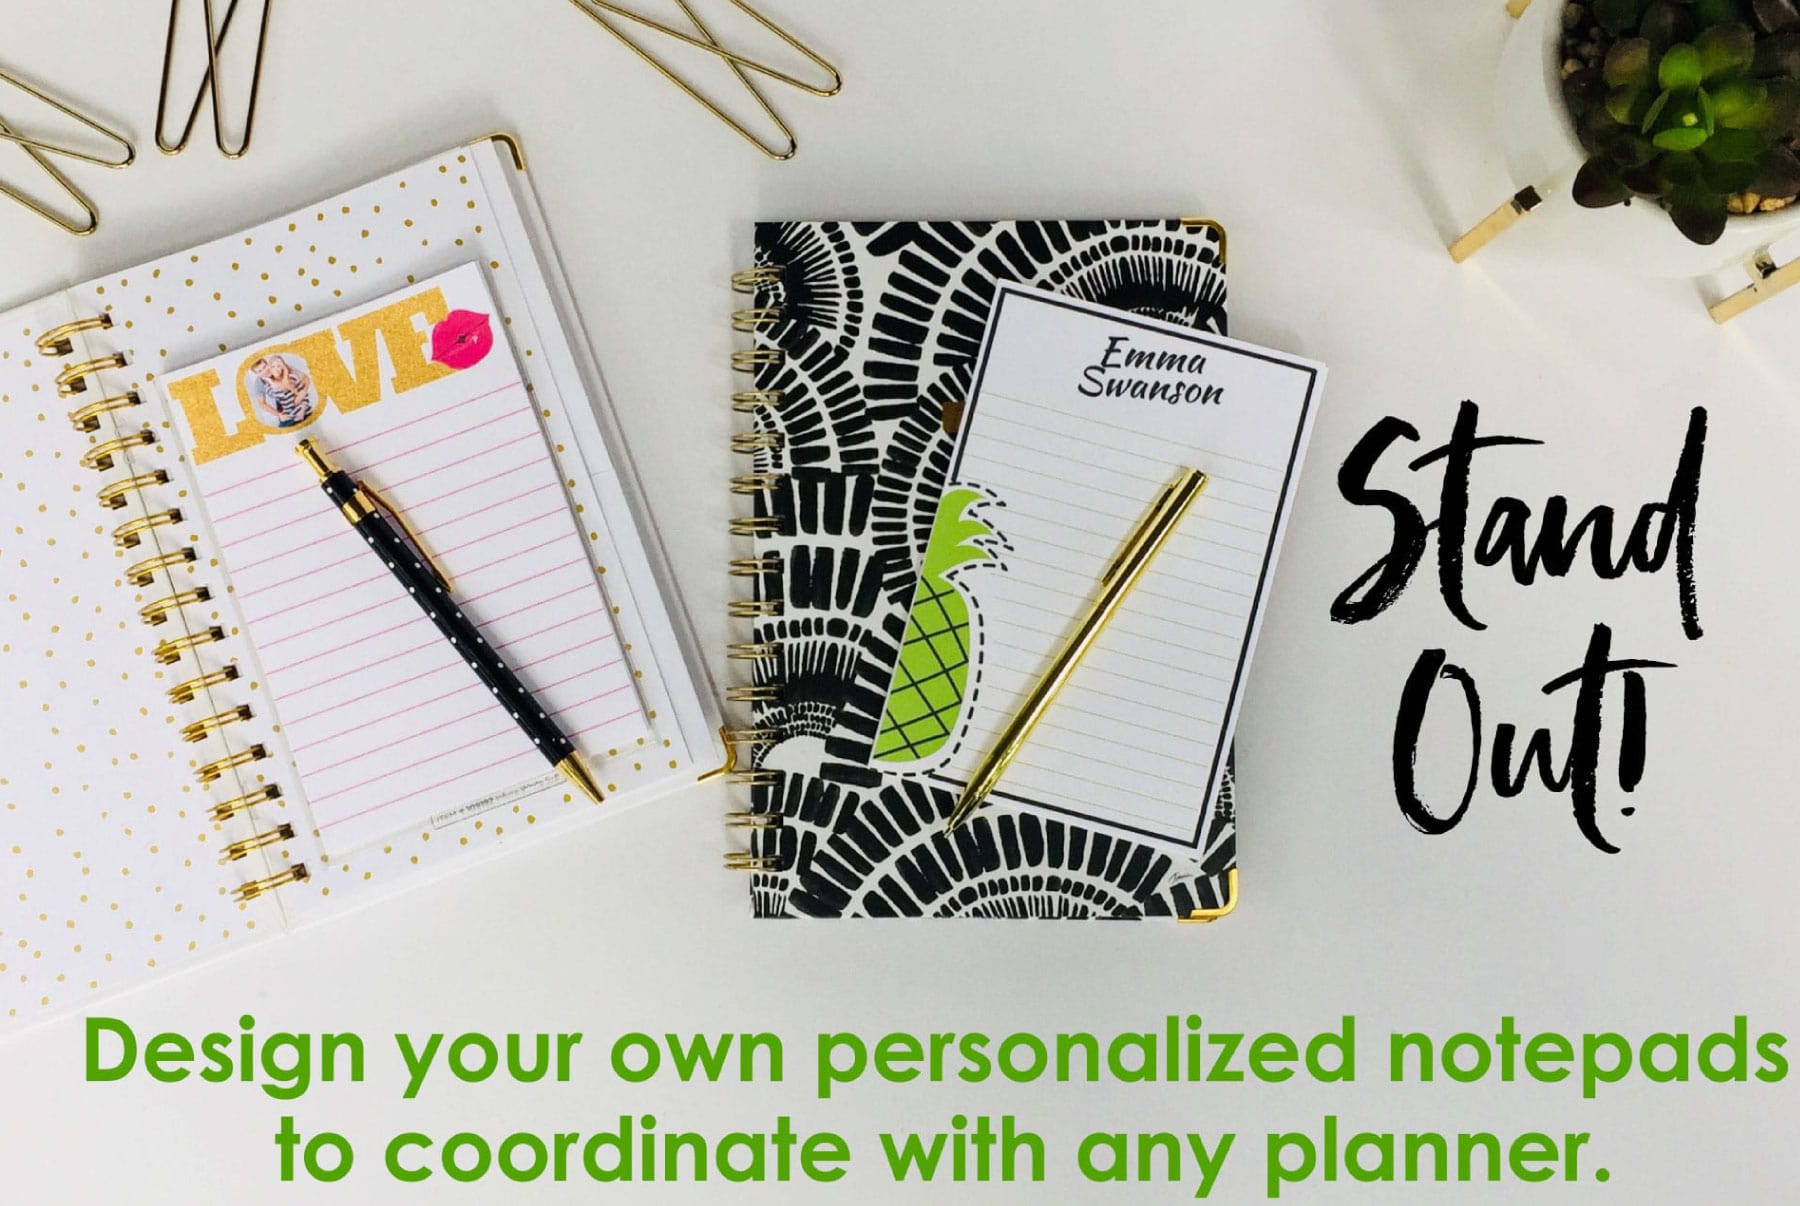 Planner dhesive pocket to hold personalized notepad in planner